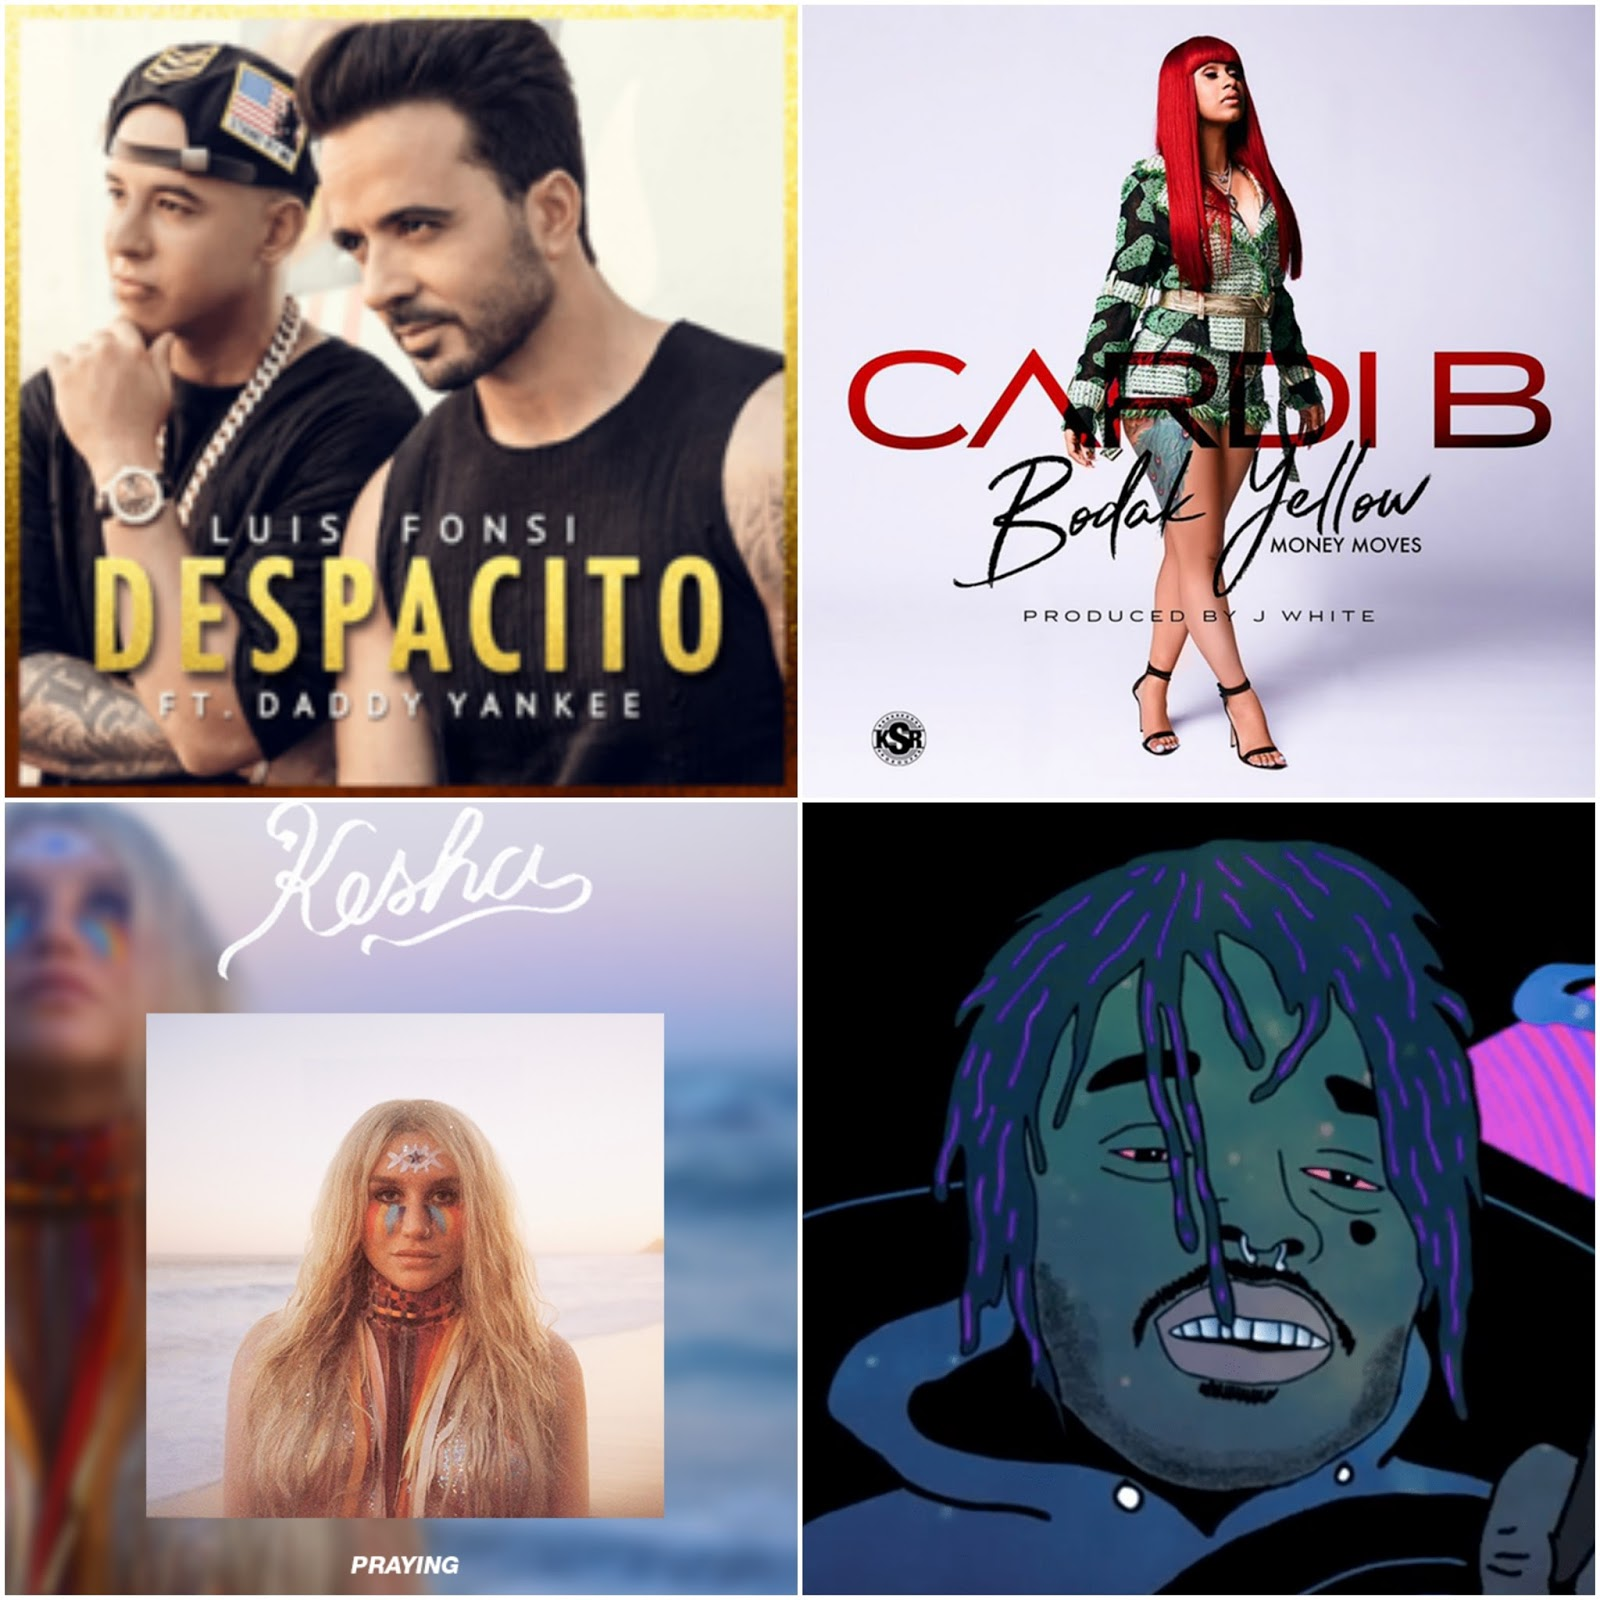 The Top 10 Best Songs of 2017 (Despacito, Bodak Yellow)